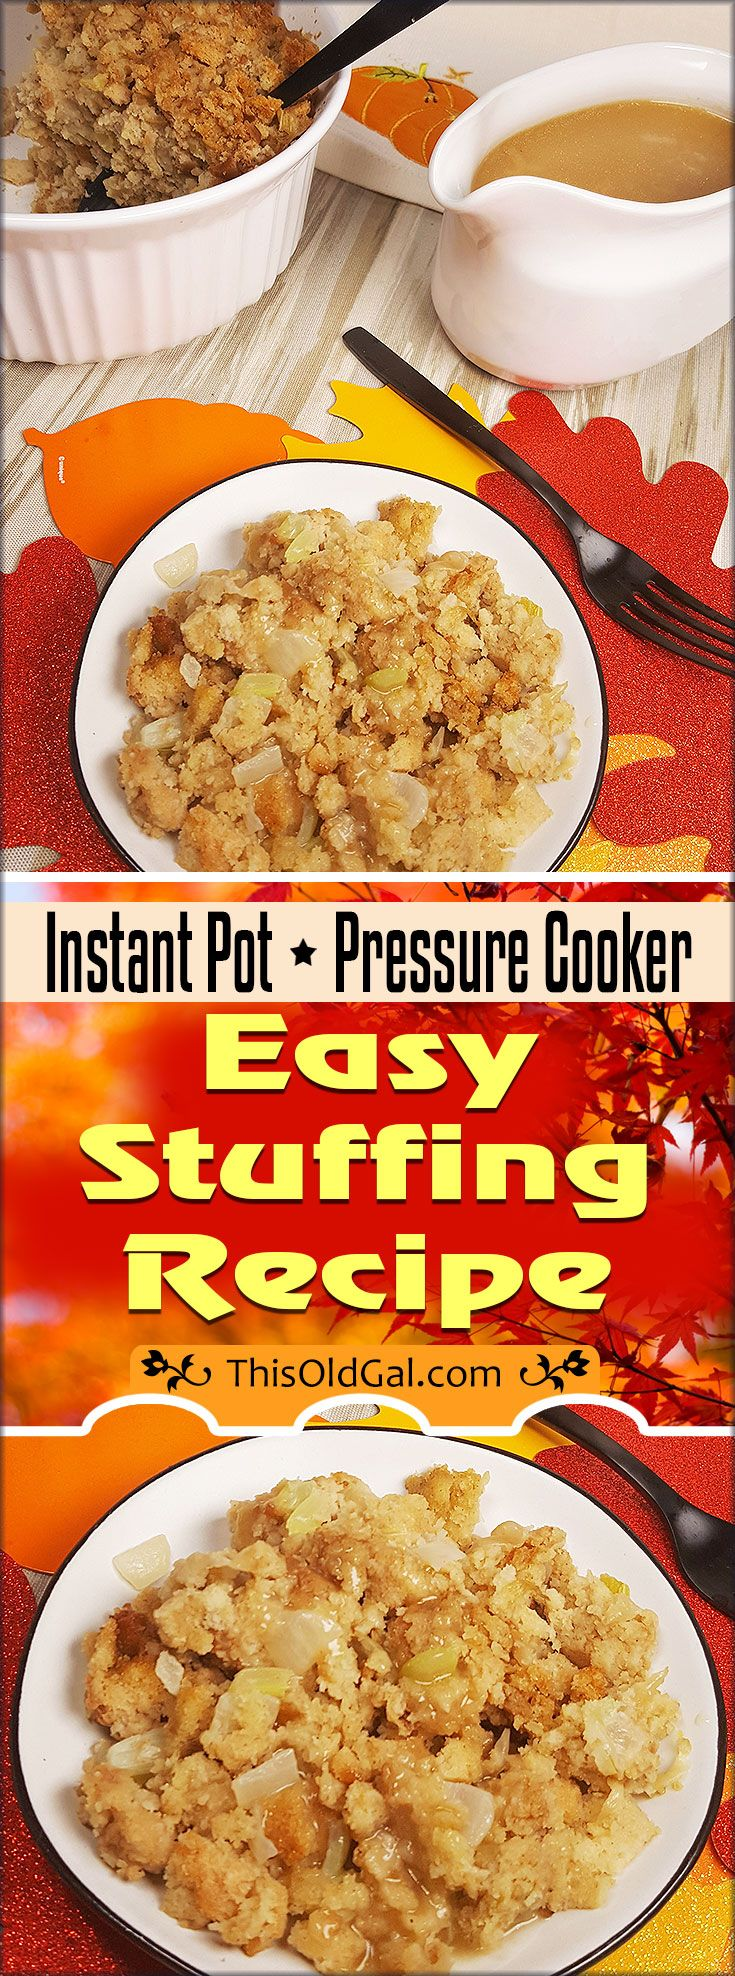 This Pressure Cooker Stuffing Recipewill get you in and out of the kitchen, so that you can spend quality time with your loved ones. via @thisoldgalcooks